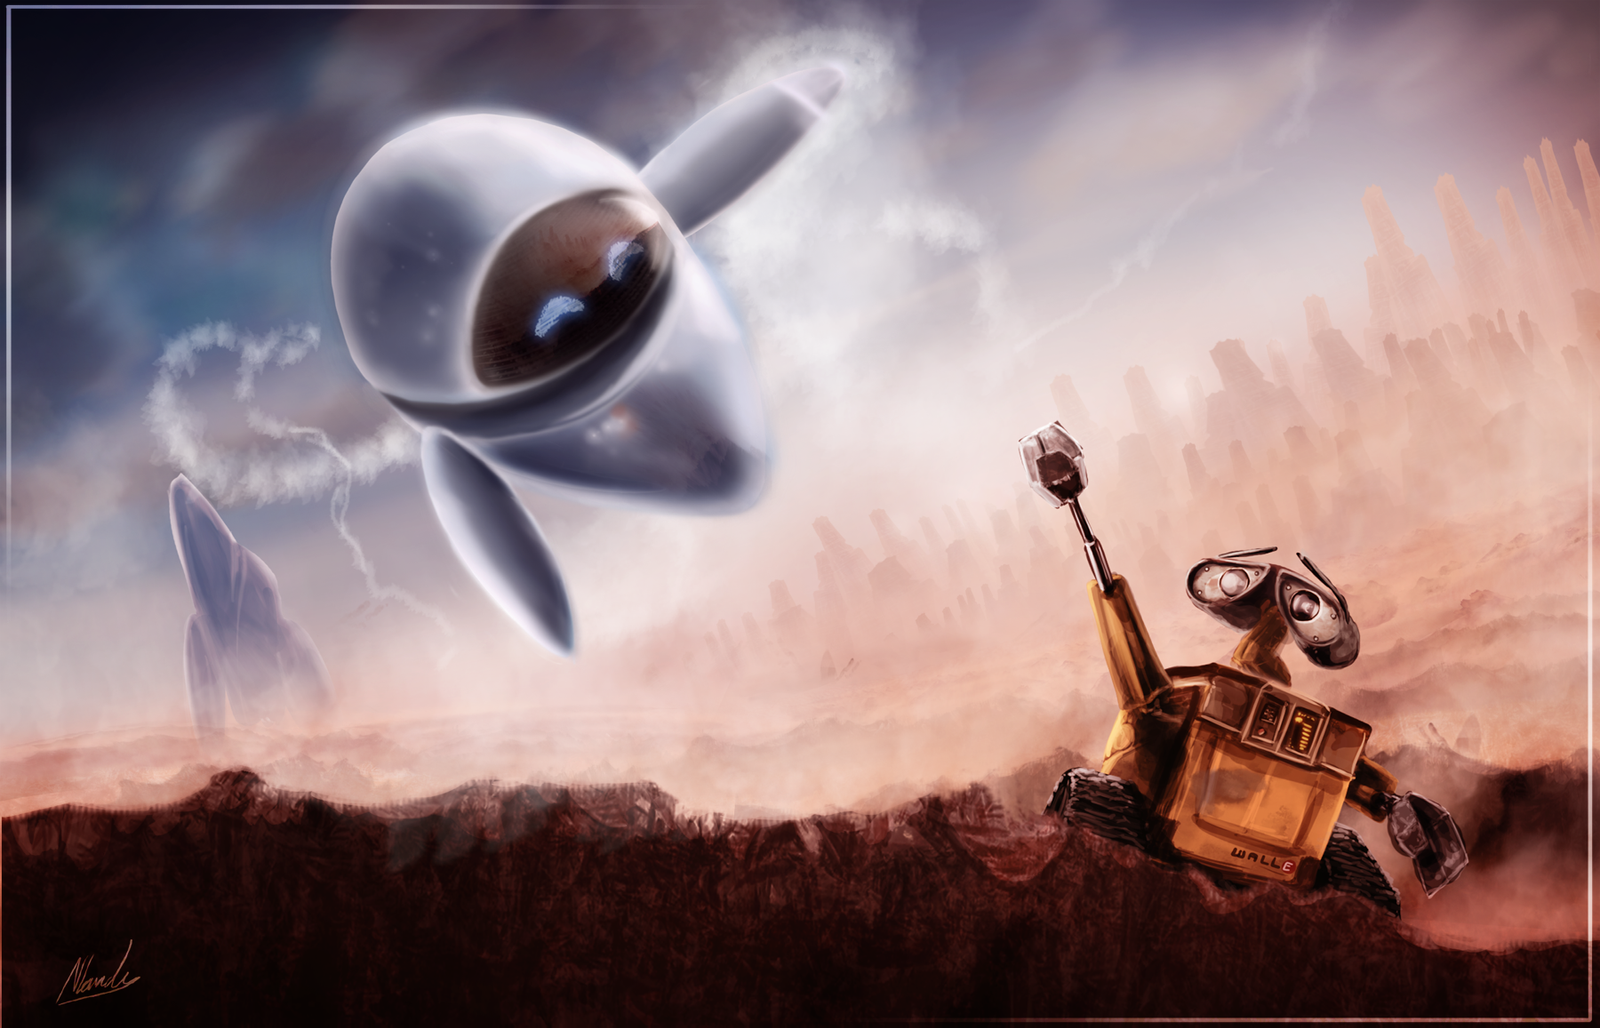 Visitor - Wall-E Speed Art - 4hrs by IceDragonhawk